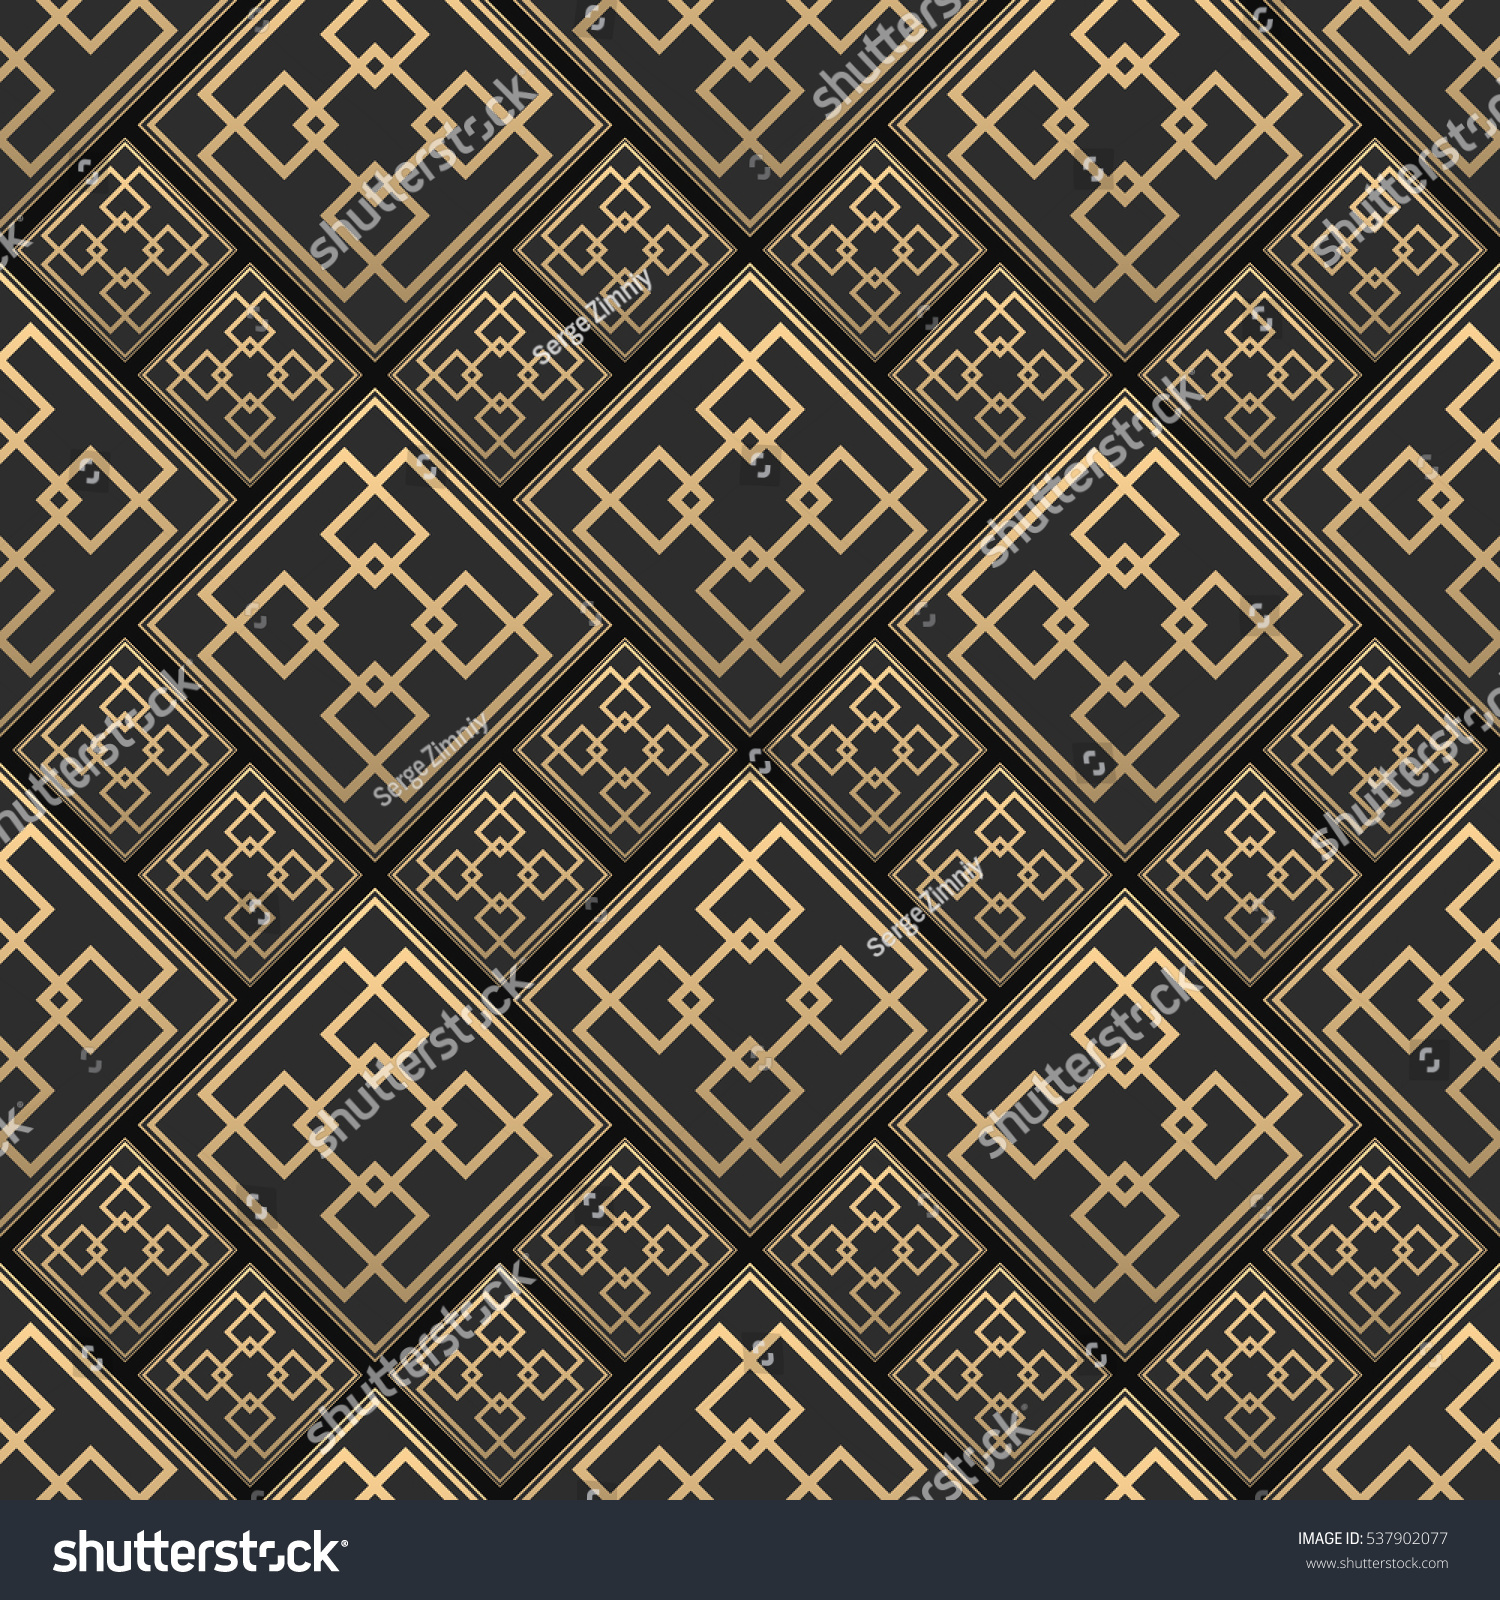 Seamless pattern art deco style black stock vector 537902077 seamless pattern in art deco style black and golden tilework 3d effect ceramic tiles dailygadgetfo Image collections